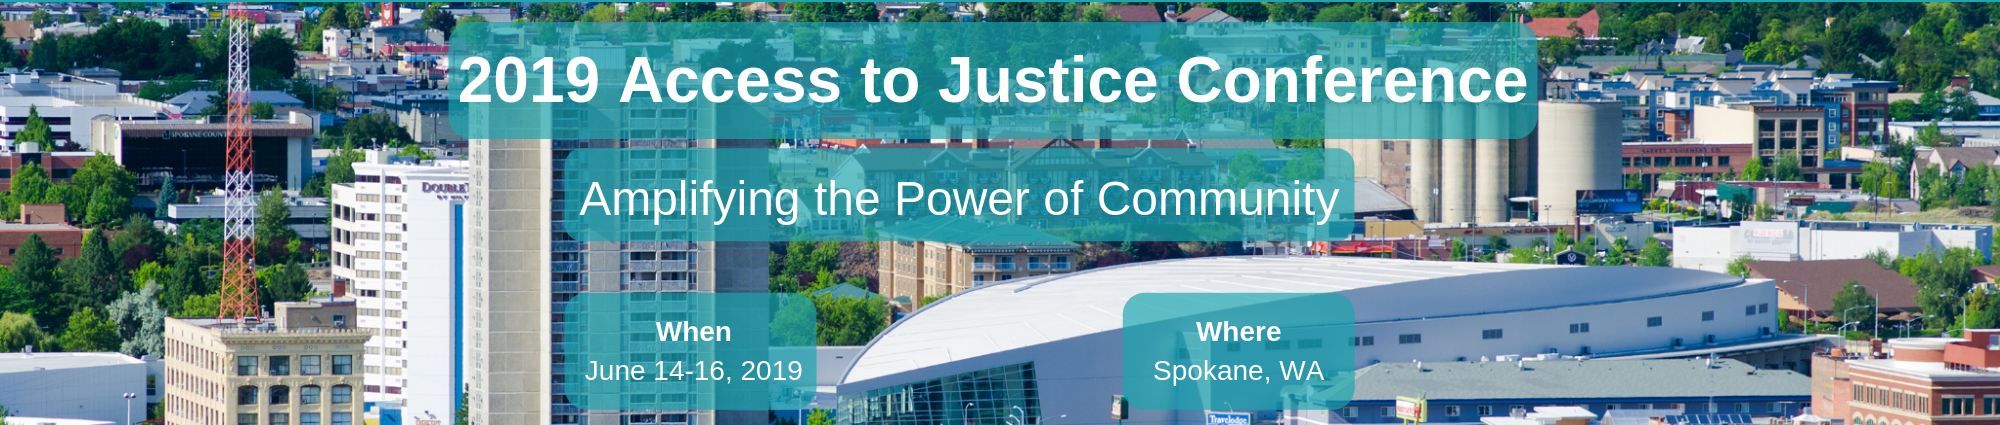 Image of Spokane with the text 2019 Access to Justice Conference, Amplifying the Power of Community, When June 14-16, 2019 and Where Spokane WA